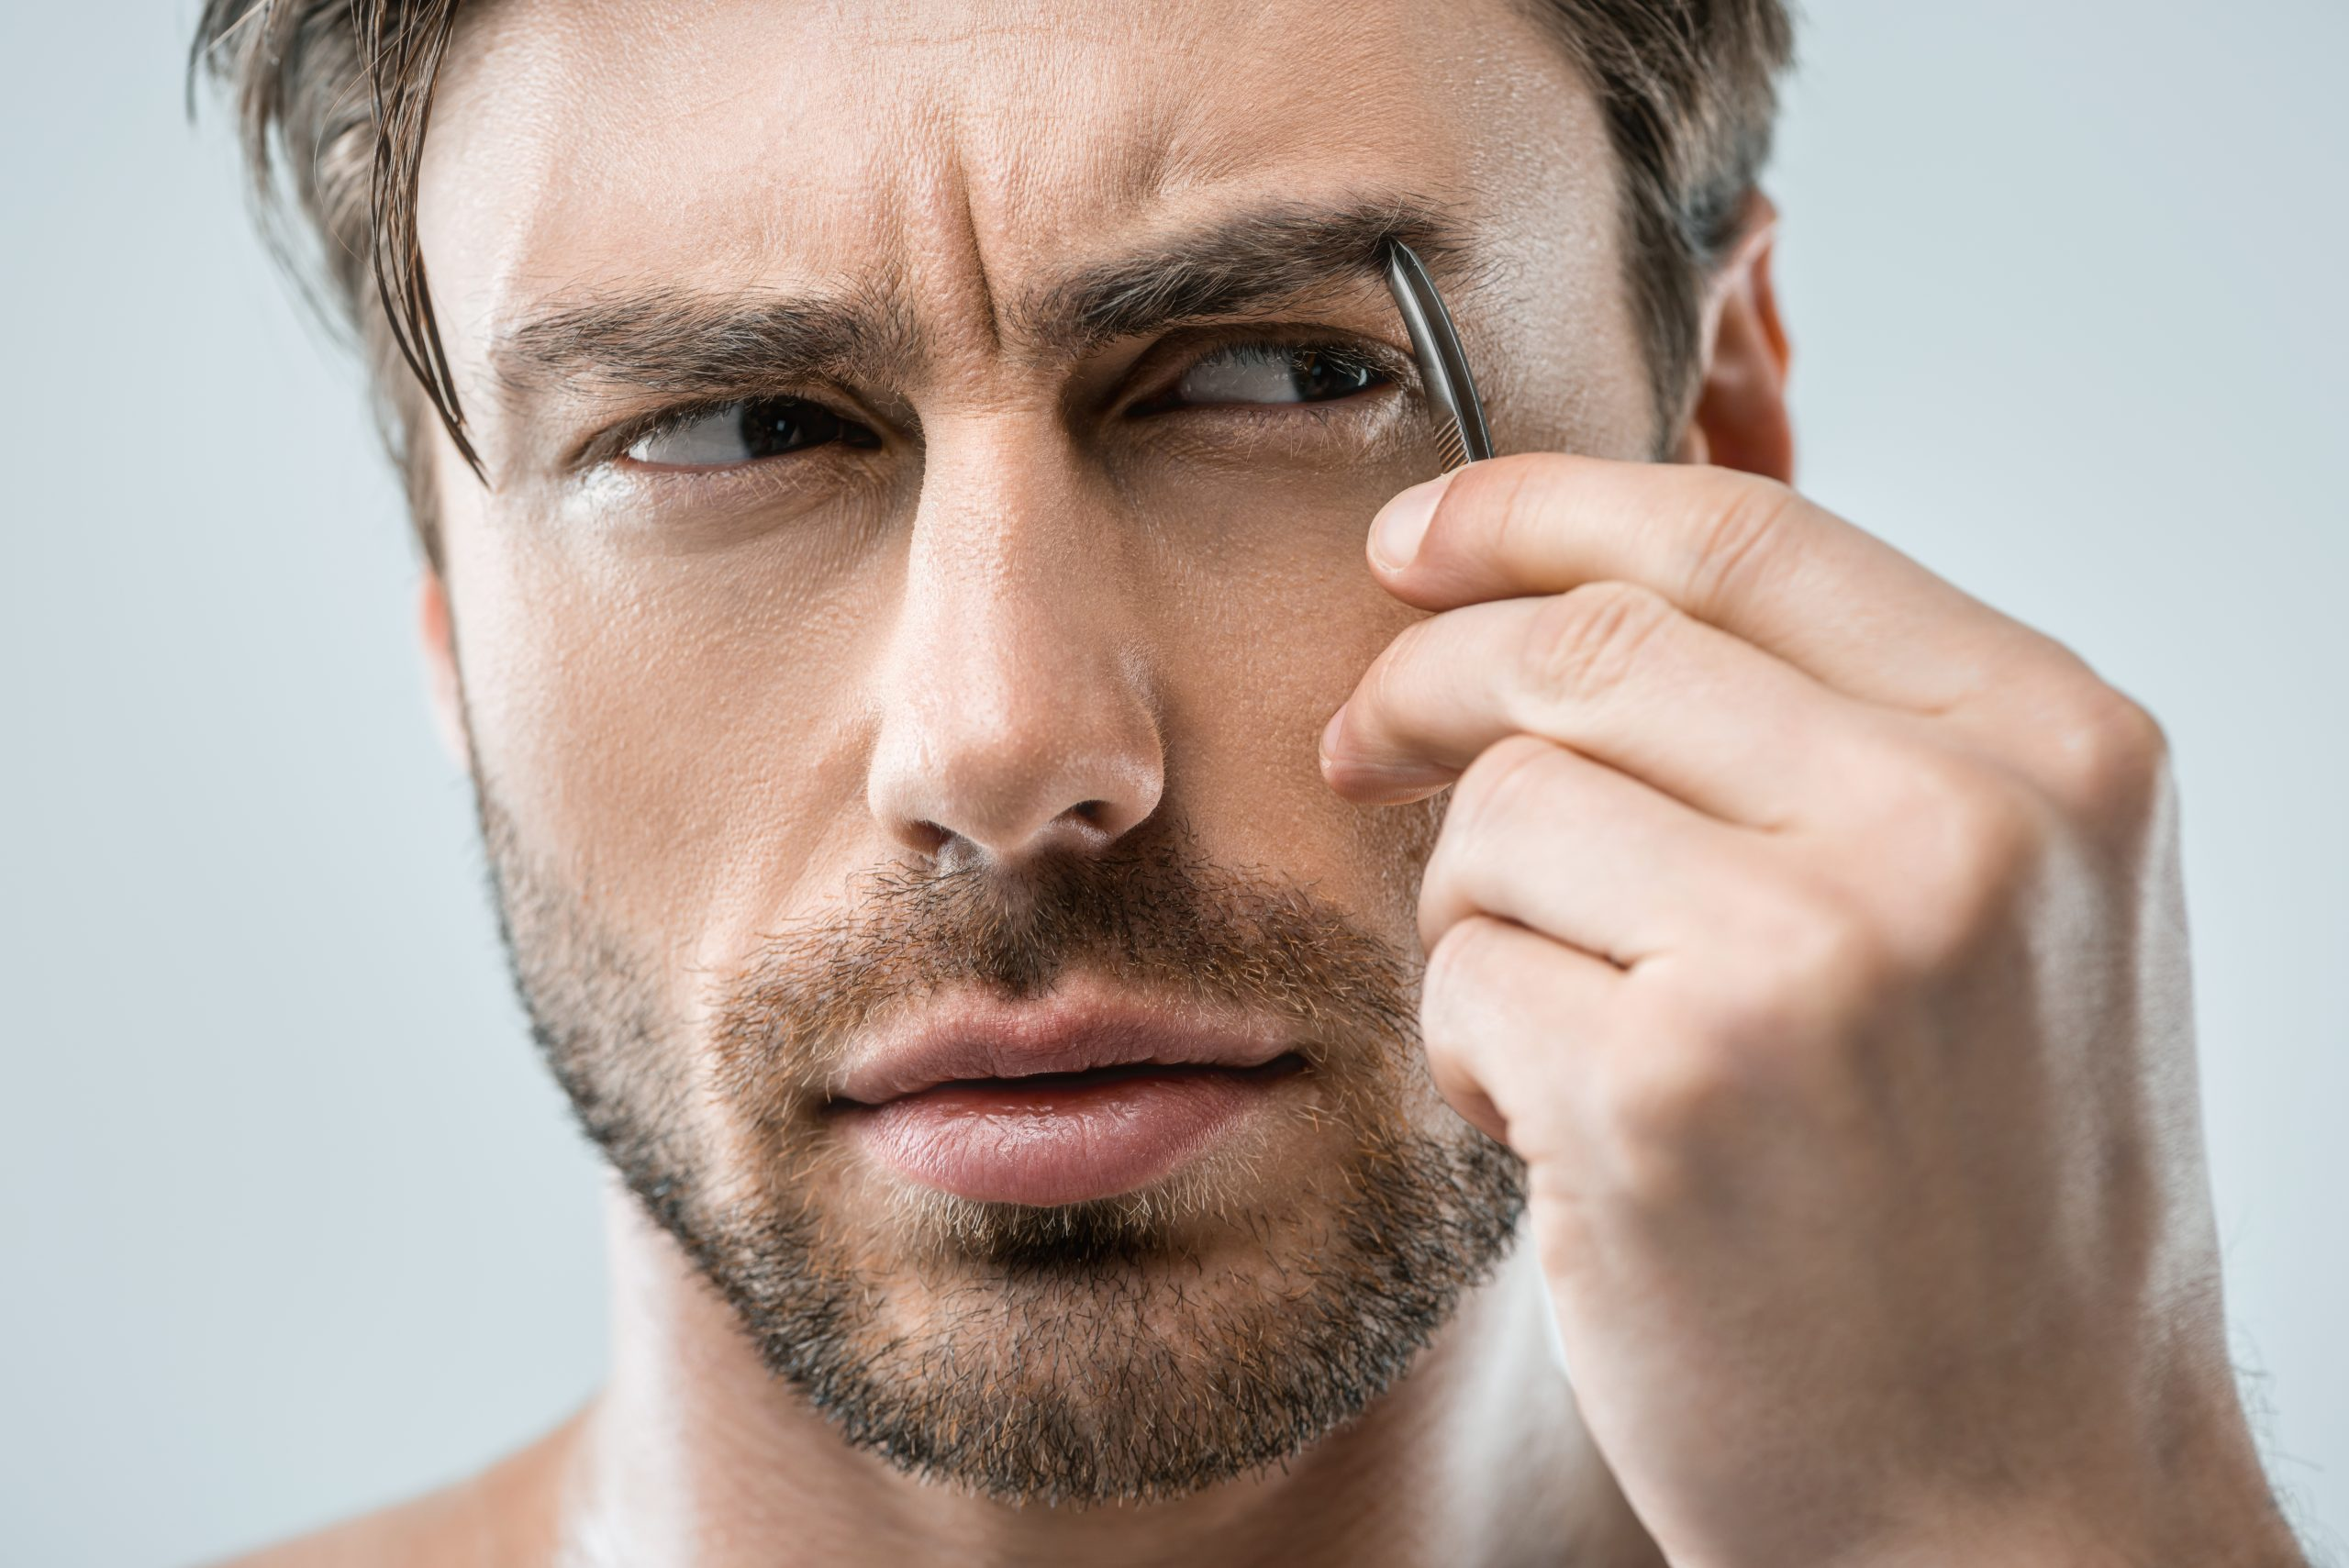 A man plucking his eyebrows with a tweezer.